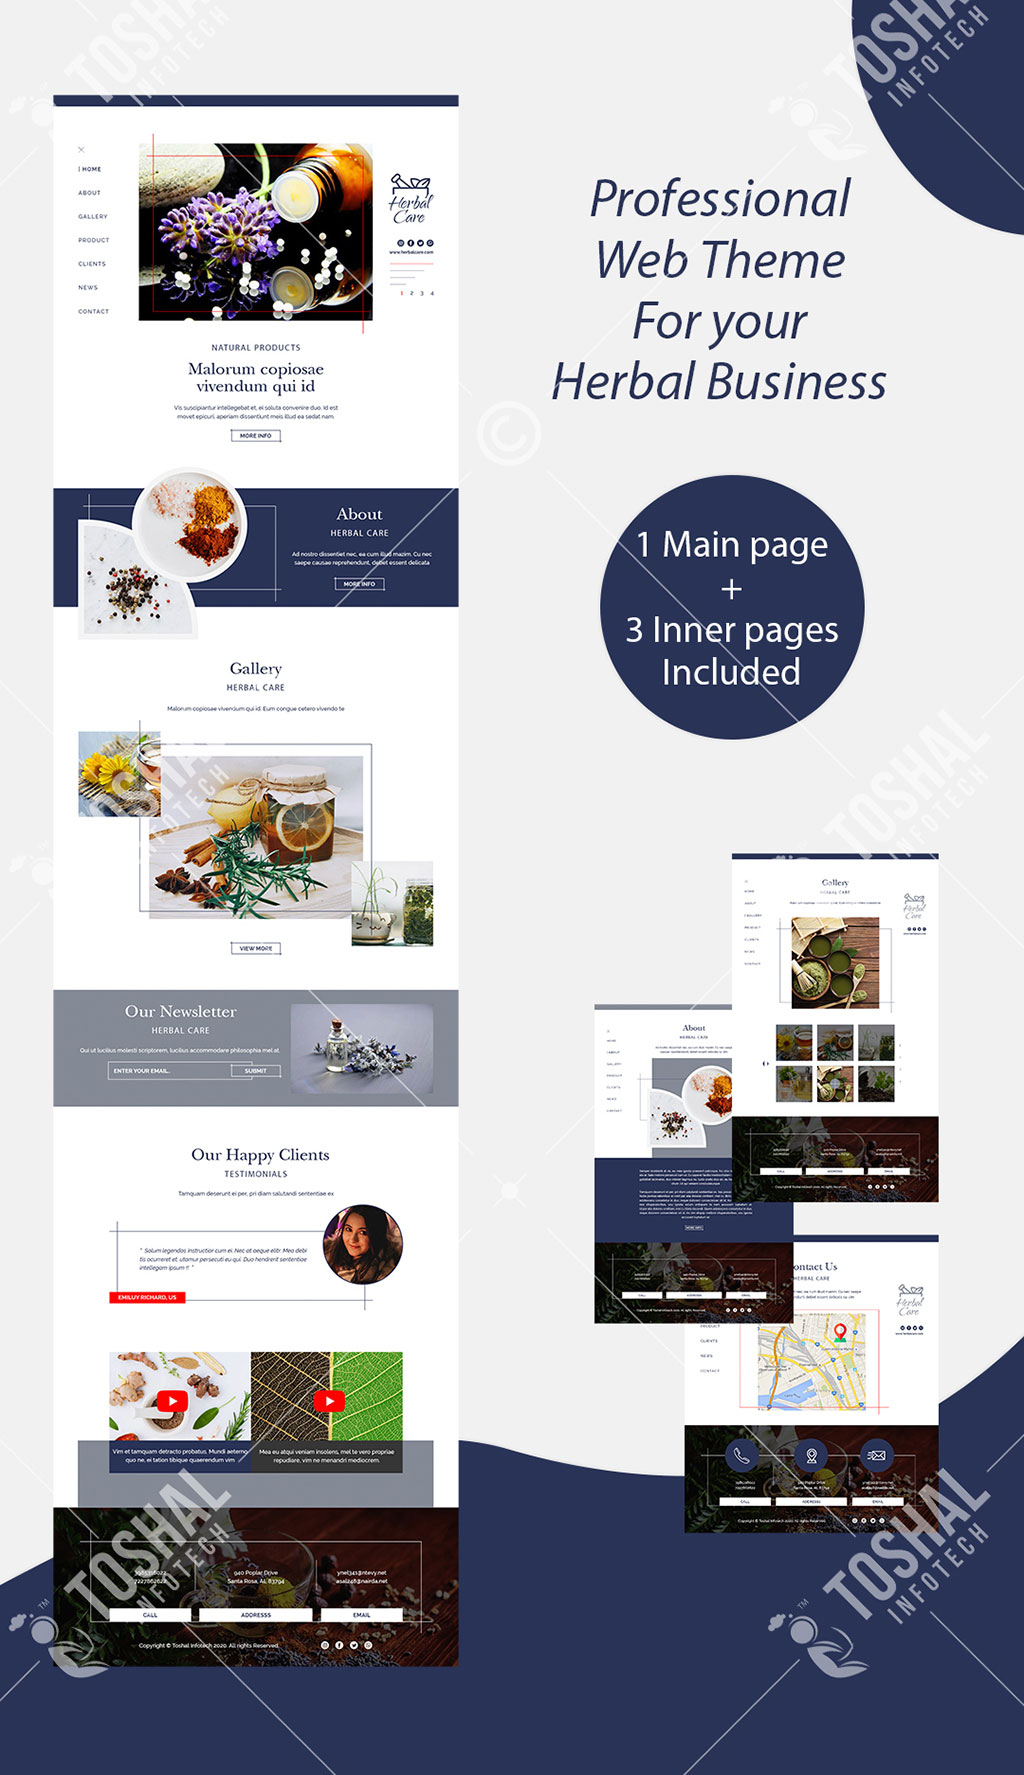 Herbal Products Theme with Inner Pages